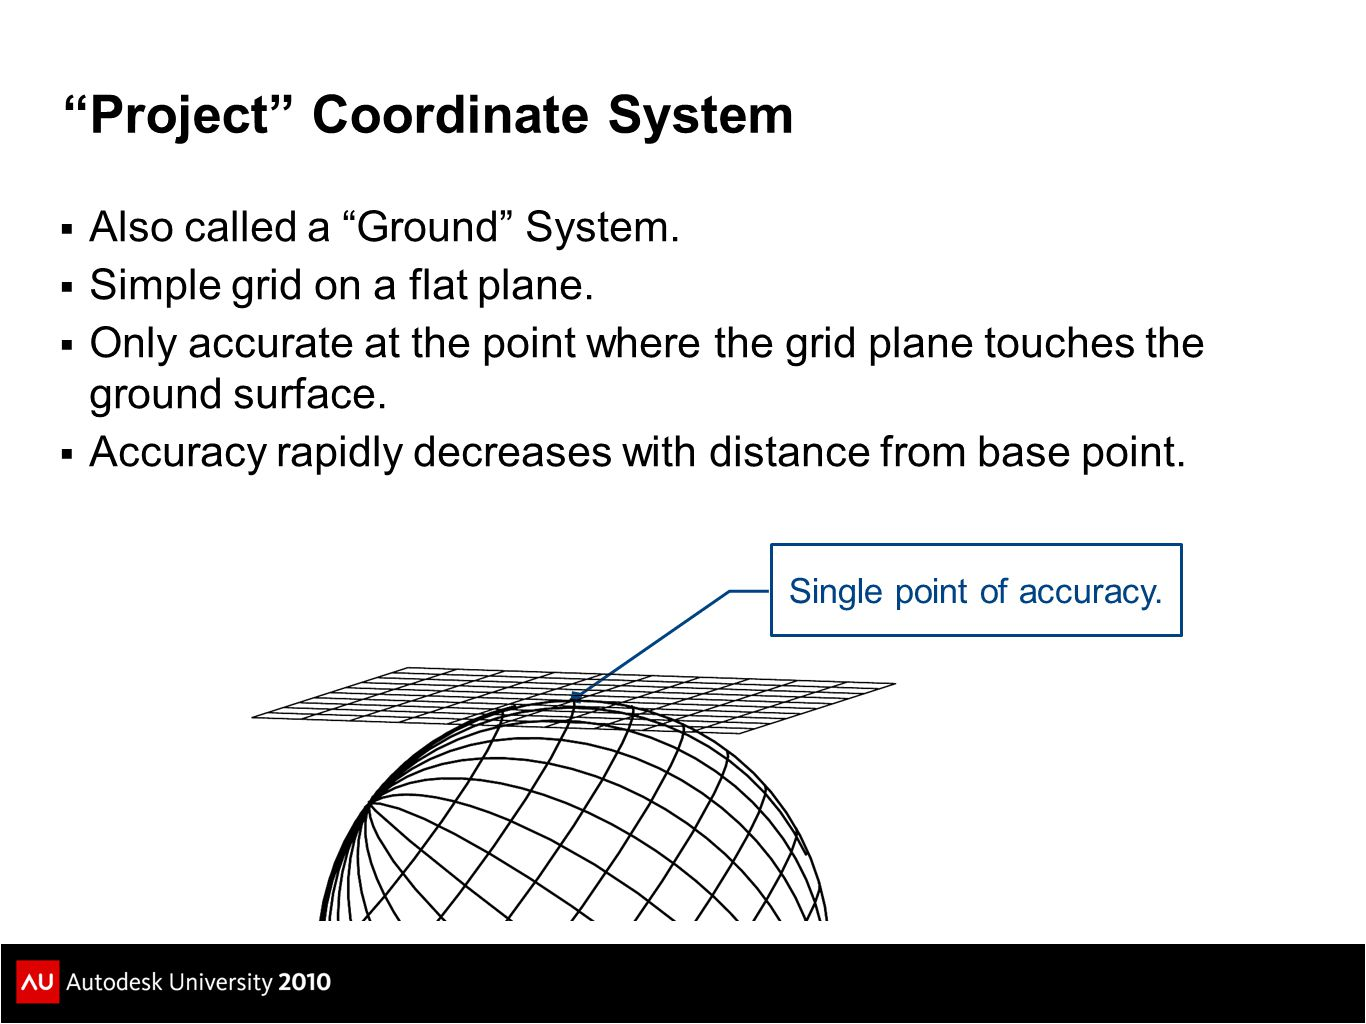 Project Coordinate System